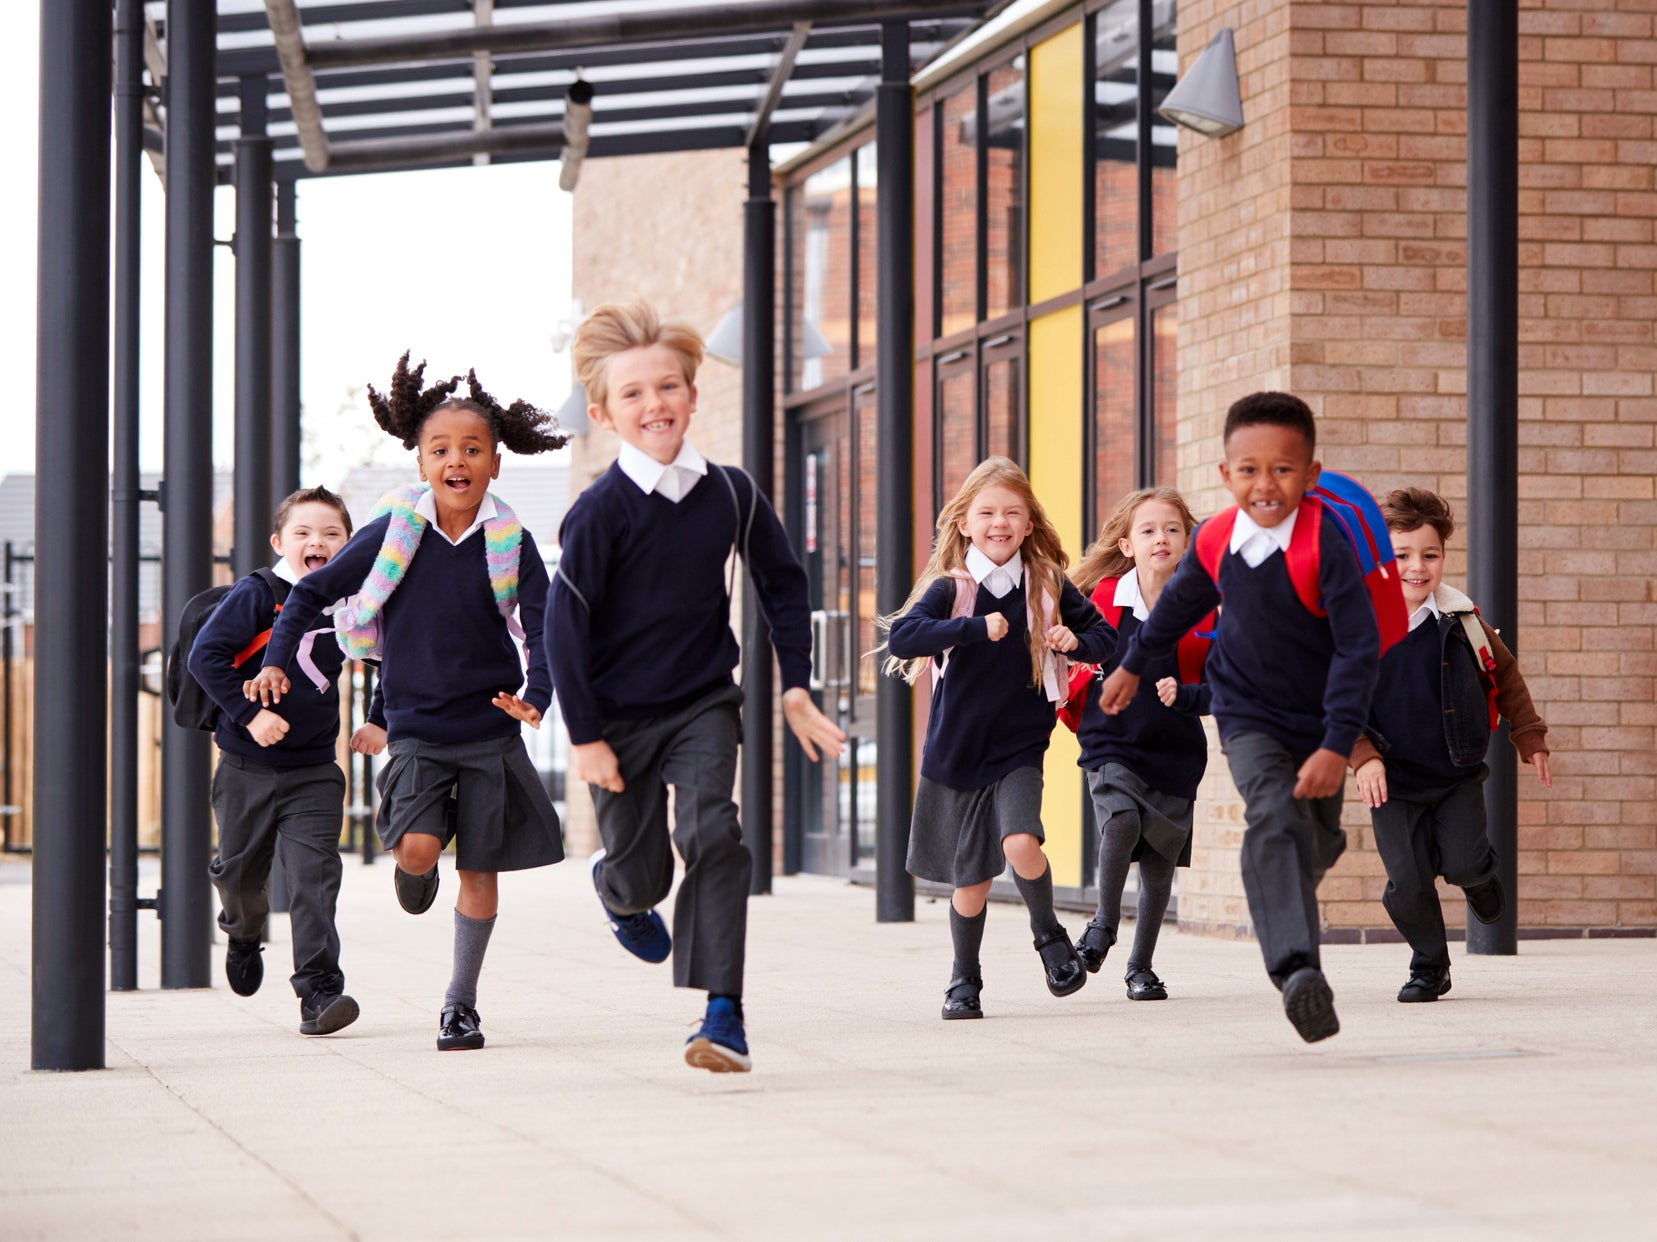 When are UK schools reopening and can parents refuse to send their children?